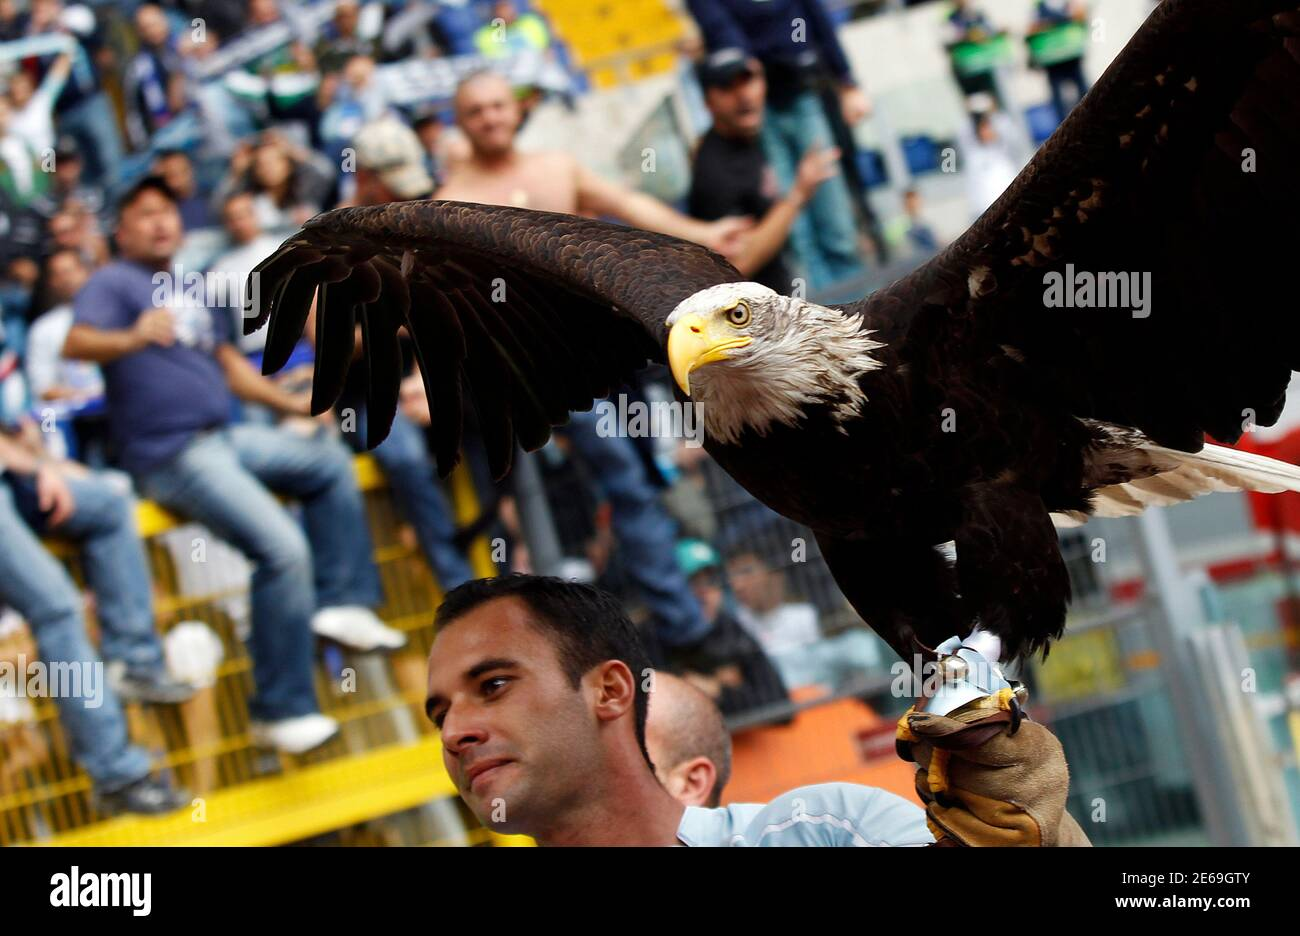 Olympia the eagle, Lazio's mascot who flies around the stadium in a pre-match routine, is carried around before their Italian Serie A soccer match against AS Roma at the Olympic stadium in Rome November 7, 2010.  REUTERS/Alessandro Bianchi (ITALY - Tags: SPORT SOCCER ANIMALS) Foto Stock